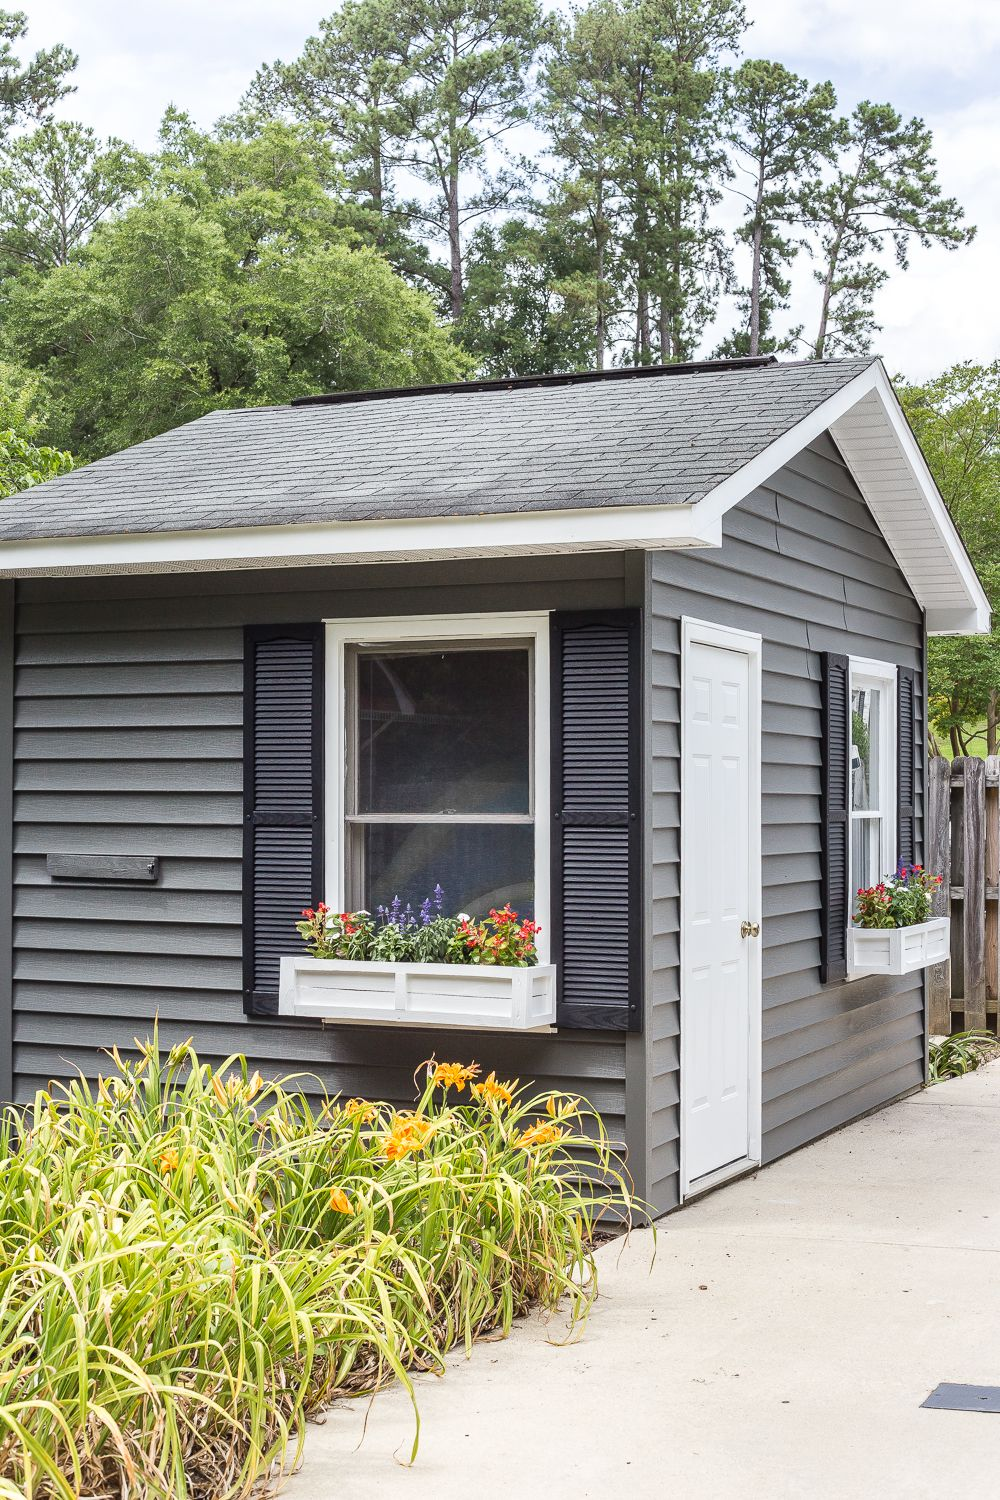 How To Paint Vinyl Siding Pool Shed Makeover Bless Er House Pool Shed Shed Makeover Vinyl Siding